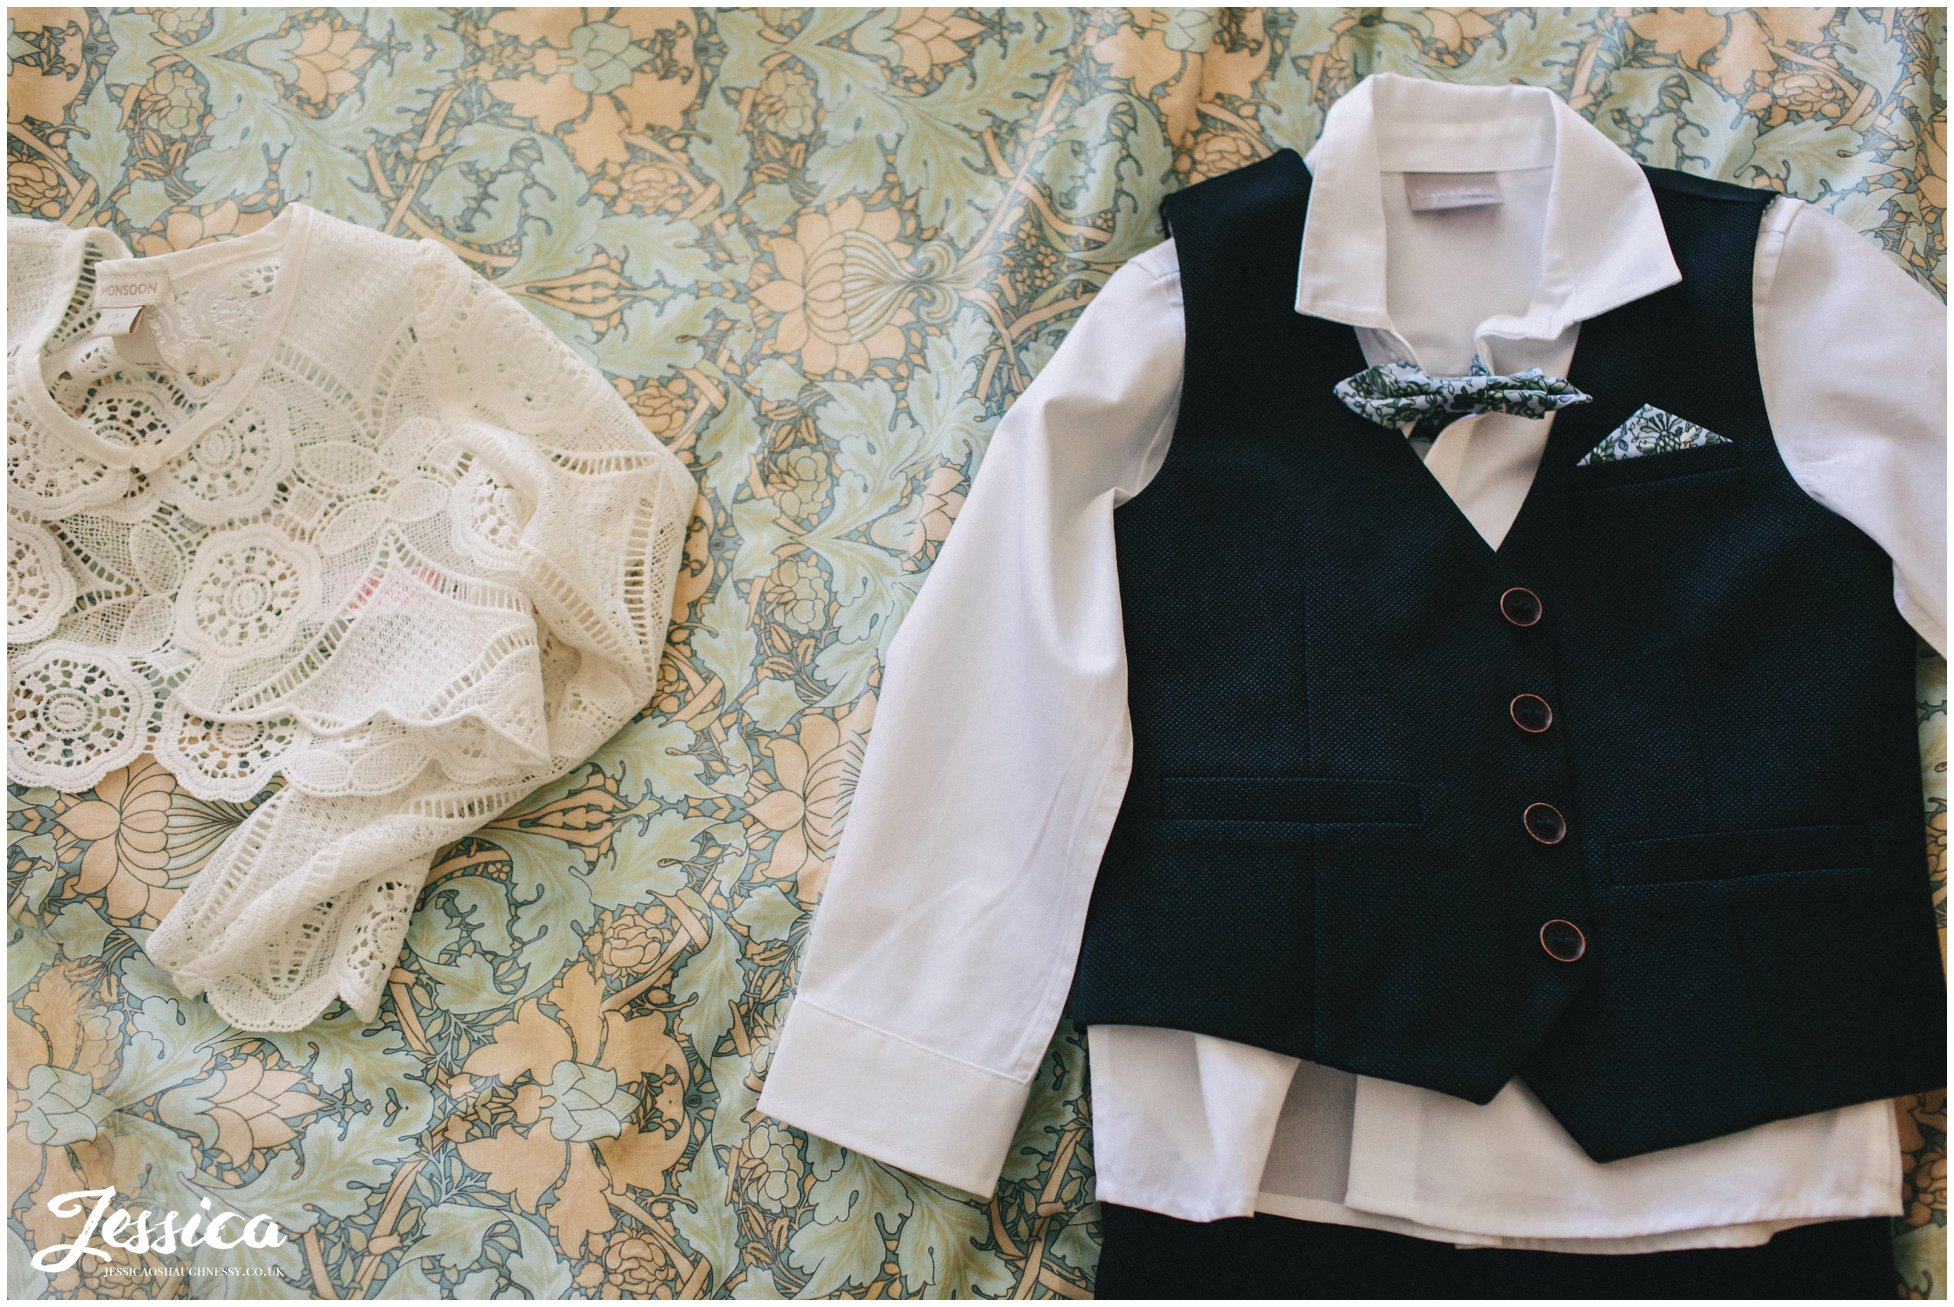 child's wedding outfit laid out on the bed